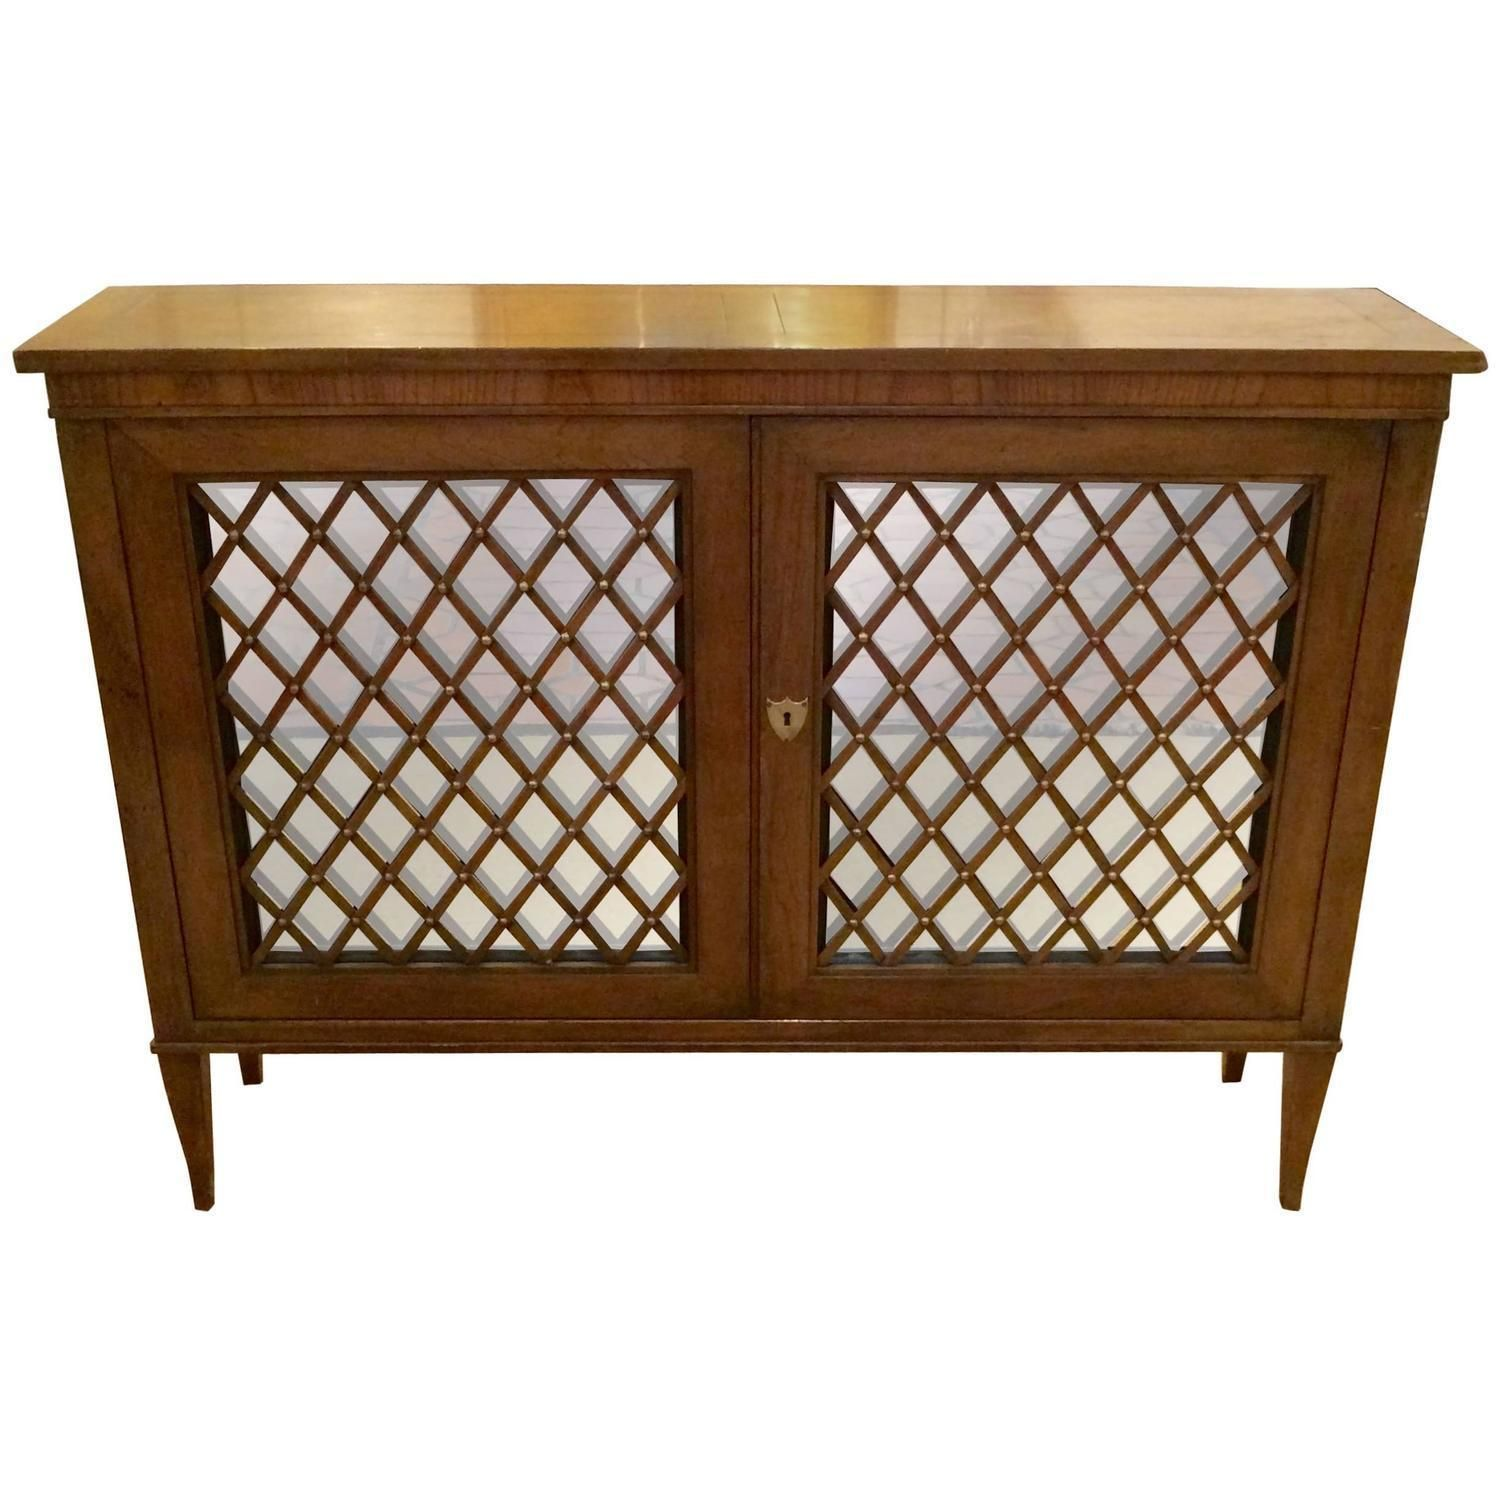 A great looking and versatile walnut credenza cabinet by Baker, having two mirrored doors with decorative wood lattice on the fronts, embellished with brass studs, revealing storage inside. Elegant tapered legs and brass shield key hole. Great in a foyer, hallway, used as a bar, etc. Baker label inside.